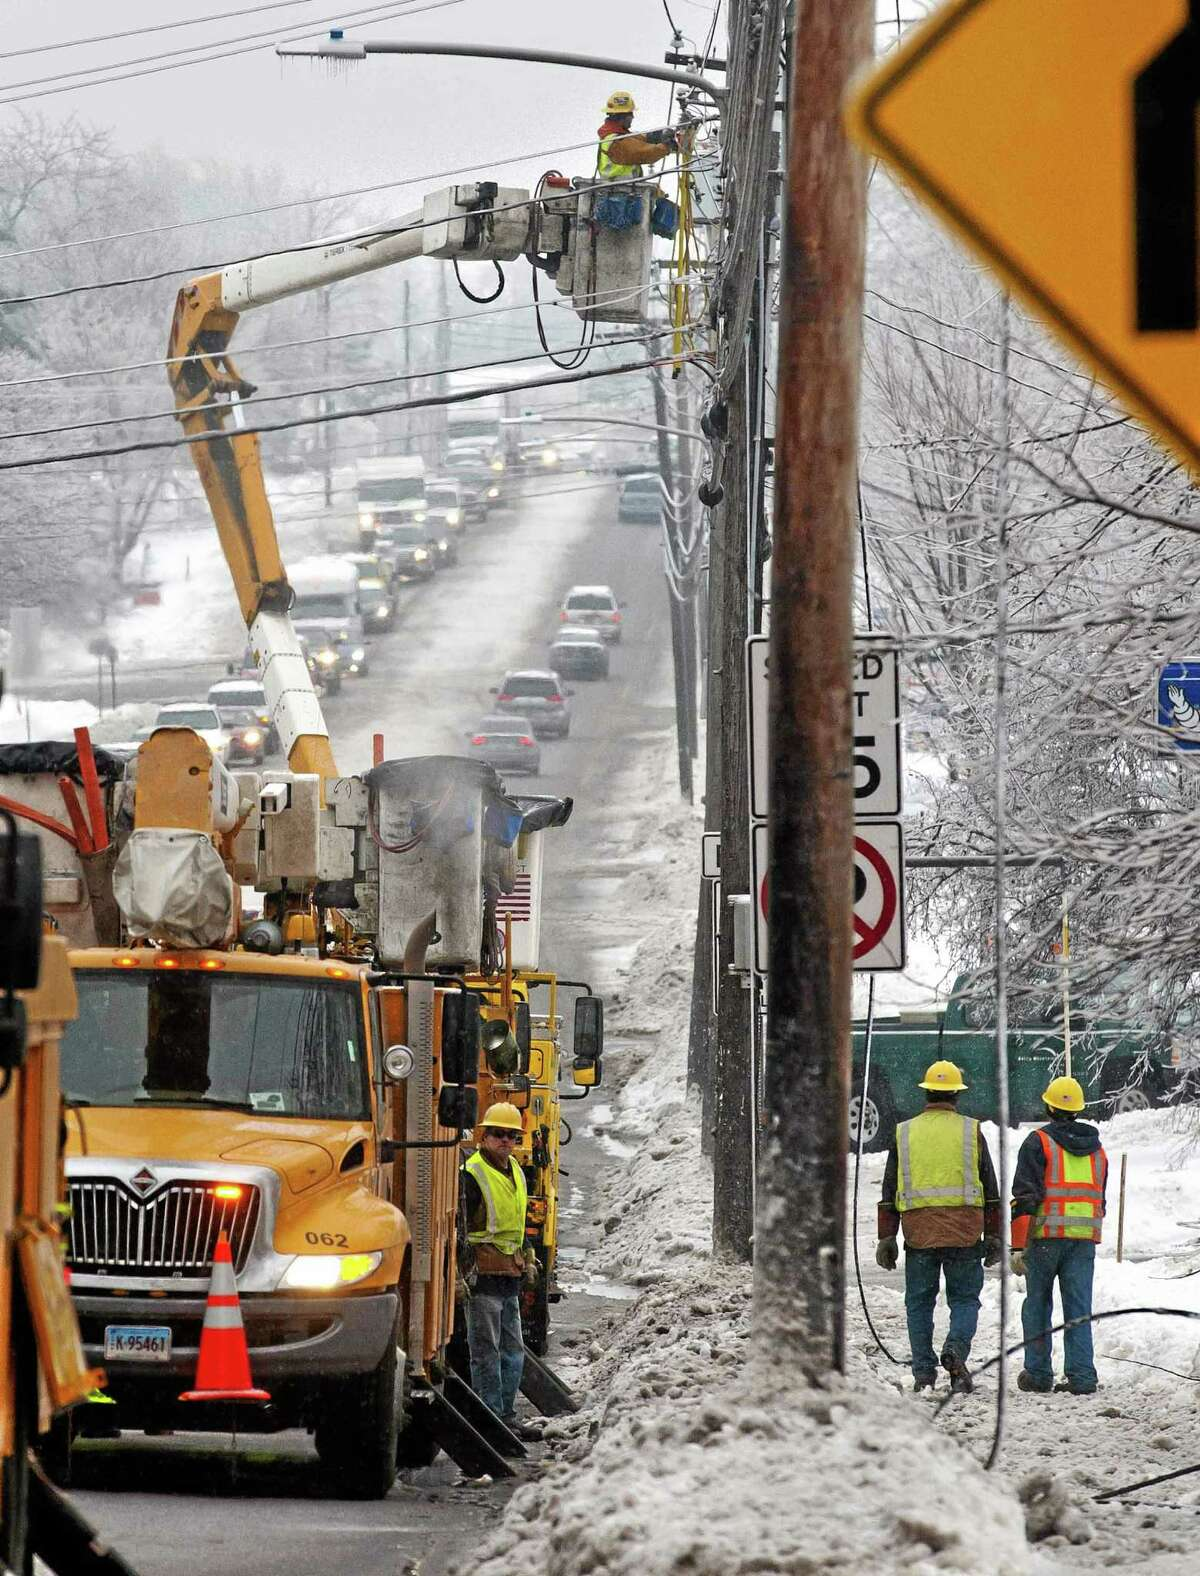 Utility crews respond to a downed power line at the intersection of Dorset Street and Kennedy Drive in South Burlington, Vt., on Monday, Dec. 23, 2013. From Michigan to Maine, hundreds of thousands remain without power days after a massive ice storm _ which one utility called the largest Christmas-week storm in its history _ blacked out homes and businesses in the Great Lakes and Northeast. (AP Photo/Burlington Free Press, Glenn Russell)